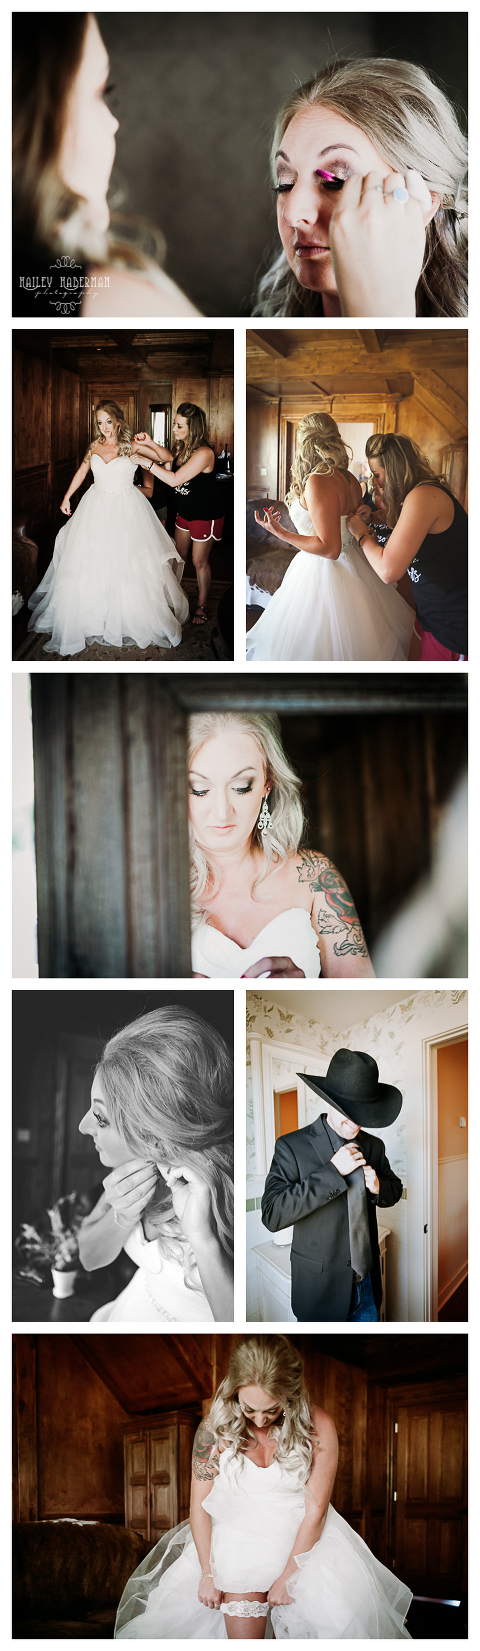 getting ready details,Ryan and Amber married at The Cattle barn in Cle Elum, WA, photographed by Hailey Haberman Ellensburg Wedding Photographer